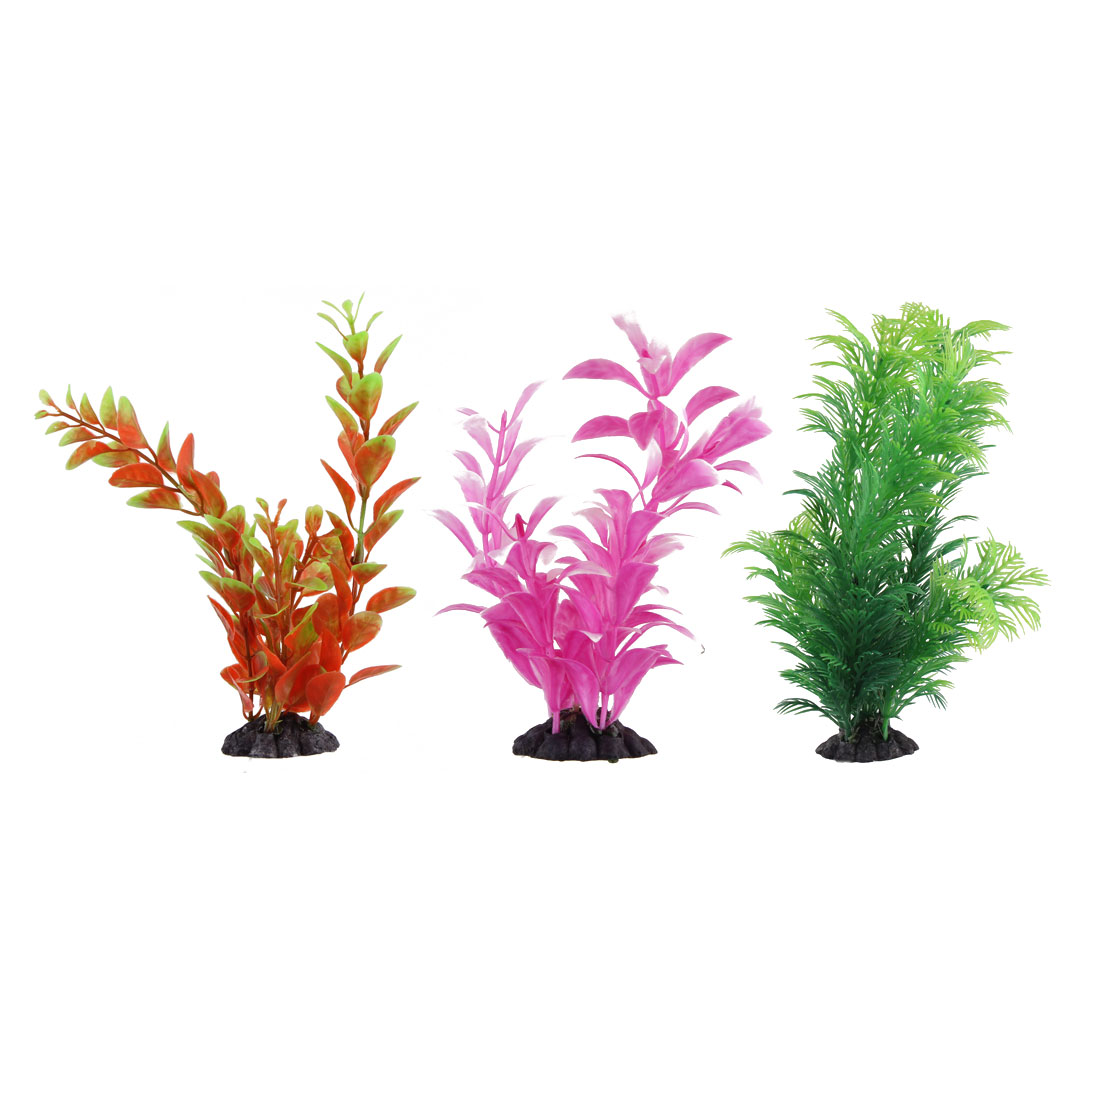 Aquarium Fishbowl Plastic Imitated Underwater Plant Grass Adornment 3 in 1